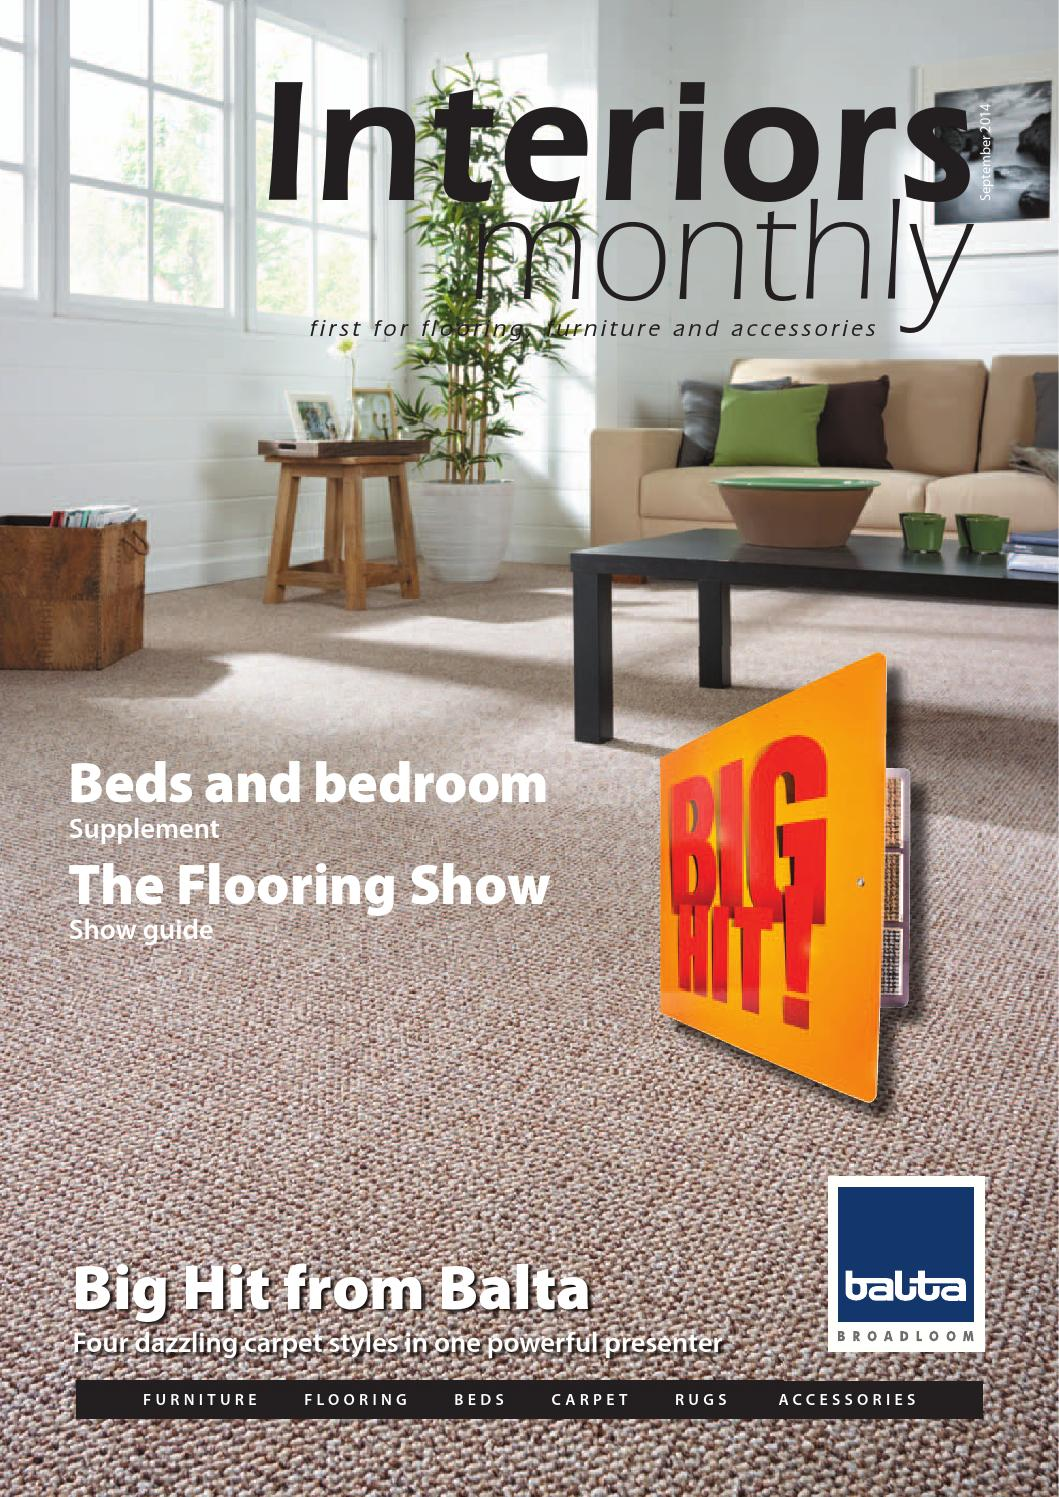 Interiors Monthly September 2014 by Interiors Monthly issuu